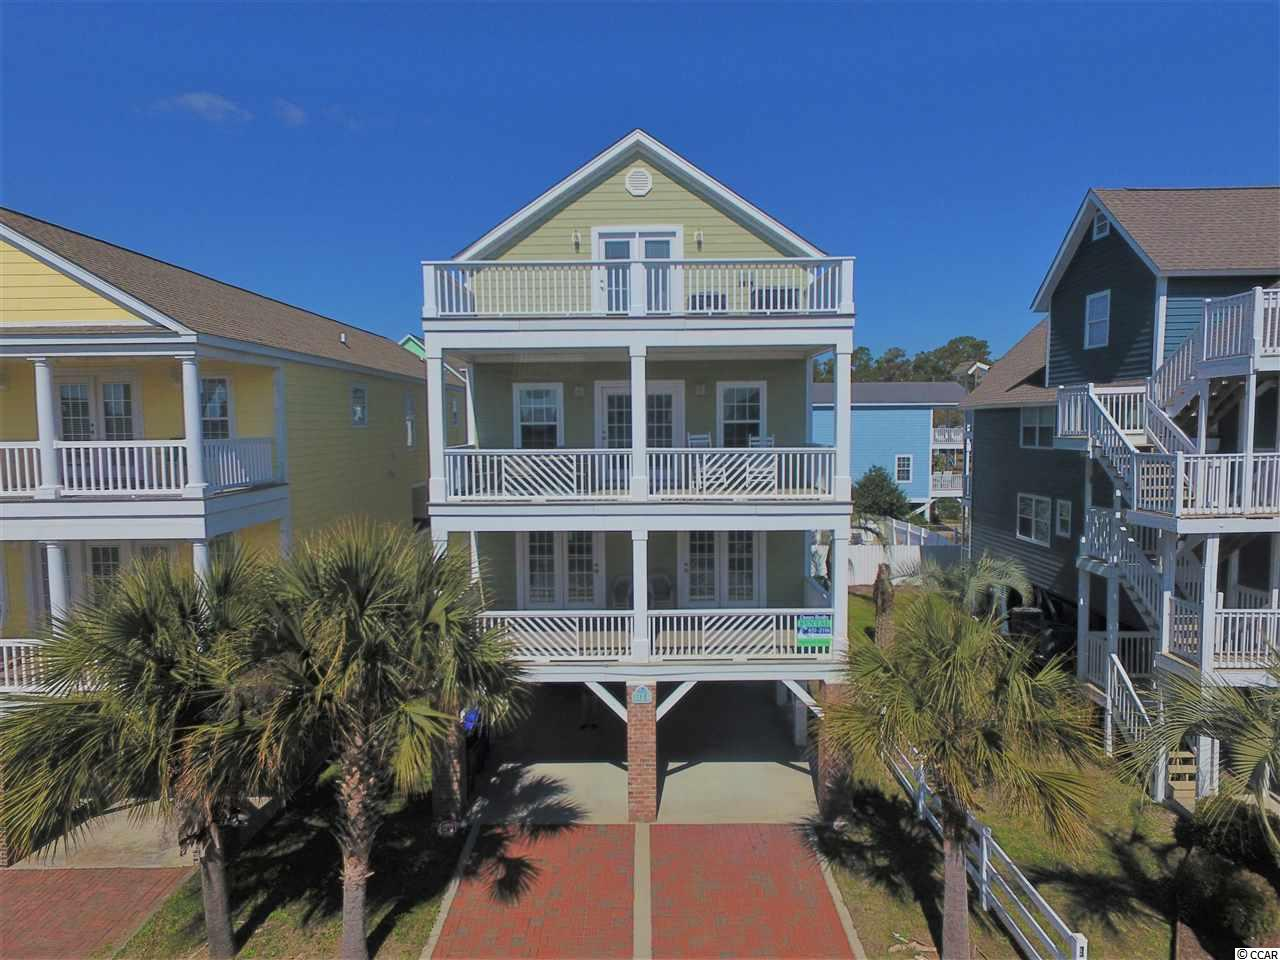 """Welcome to your very own """"Beach Oasis!""""  This 3-story, 6-bedroom, 6.5 bathroom beach home is located in the quaint town of Surfside Beach just south of all the shopping, dinning and entertainment Myrtle Beach has to offer!  This home features 2,500+ heated square feet with an inverted floor plan which has a large open living, dining and kitchen area.  Step out on to either of the first or second floor covered porches or 3rd floor open balcony to capitalize on the wonderful view!  A private pool and elevator give this home extra amenities to make it a great rental property.  Contact the listing agent, or your Realtor, to arrange a private showing."""